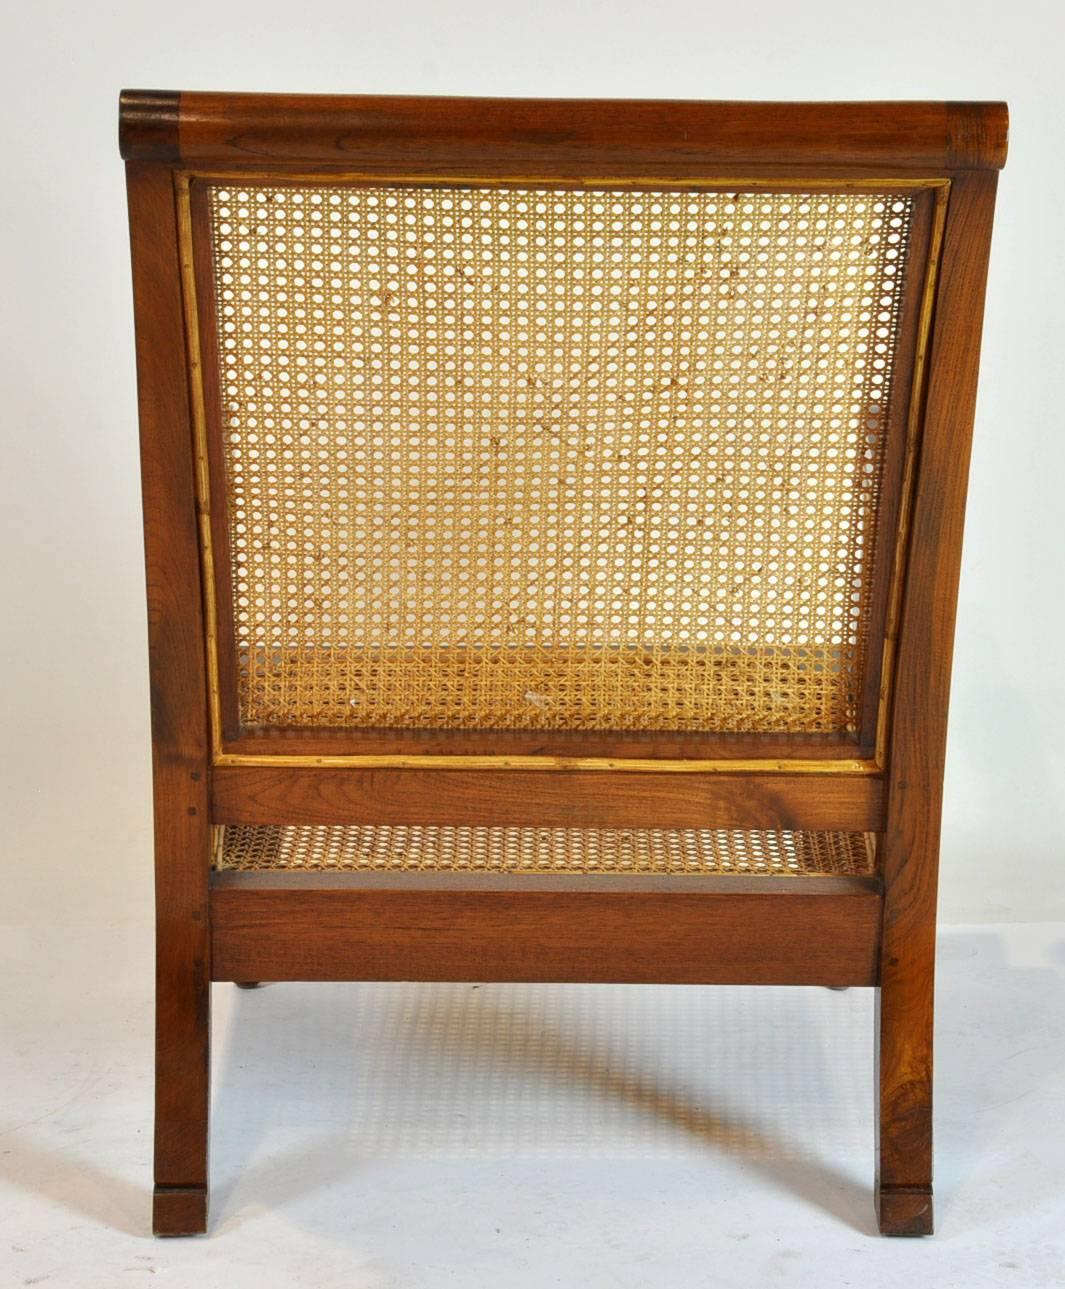 plantation style chairs velvet lounge chair british colonial imports caned leather